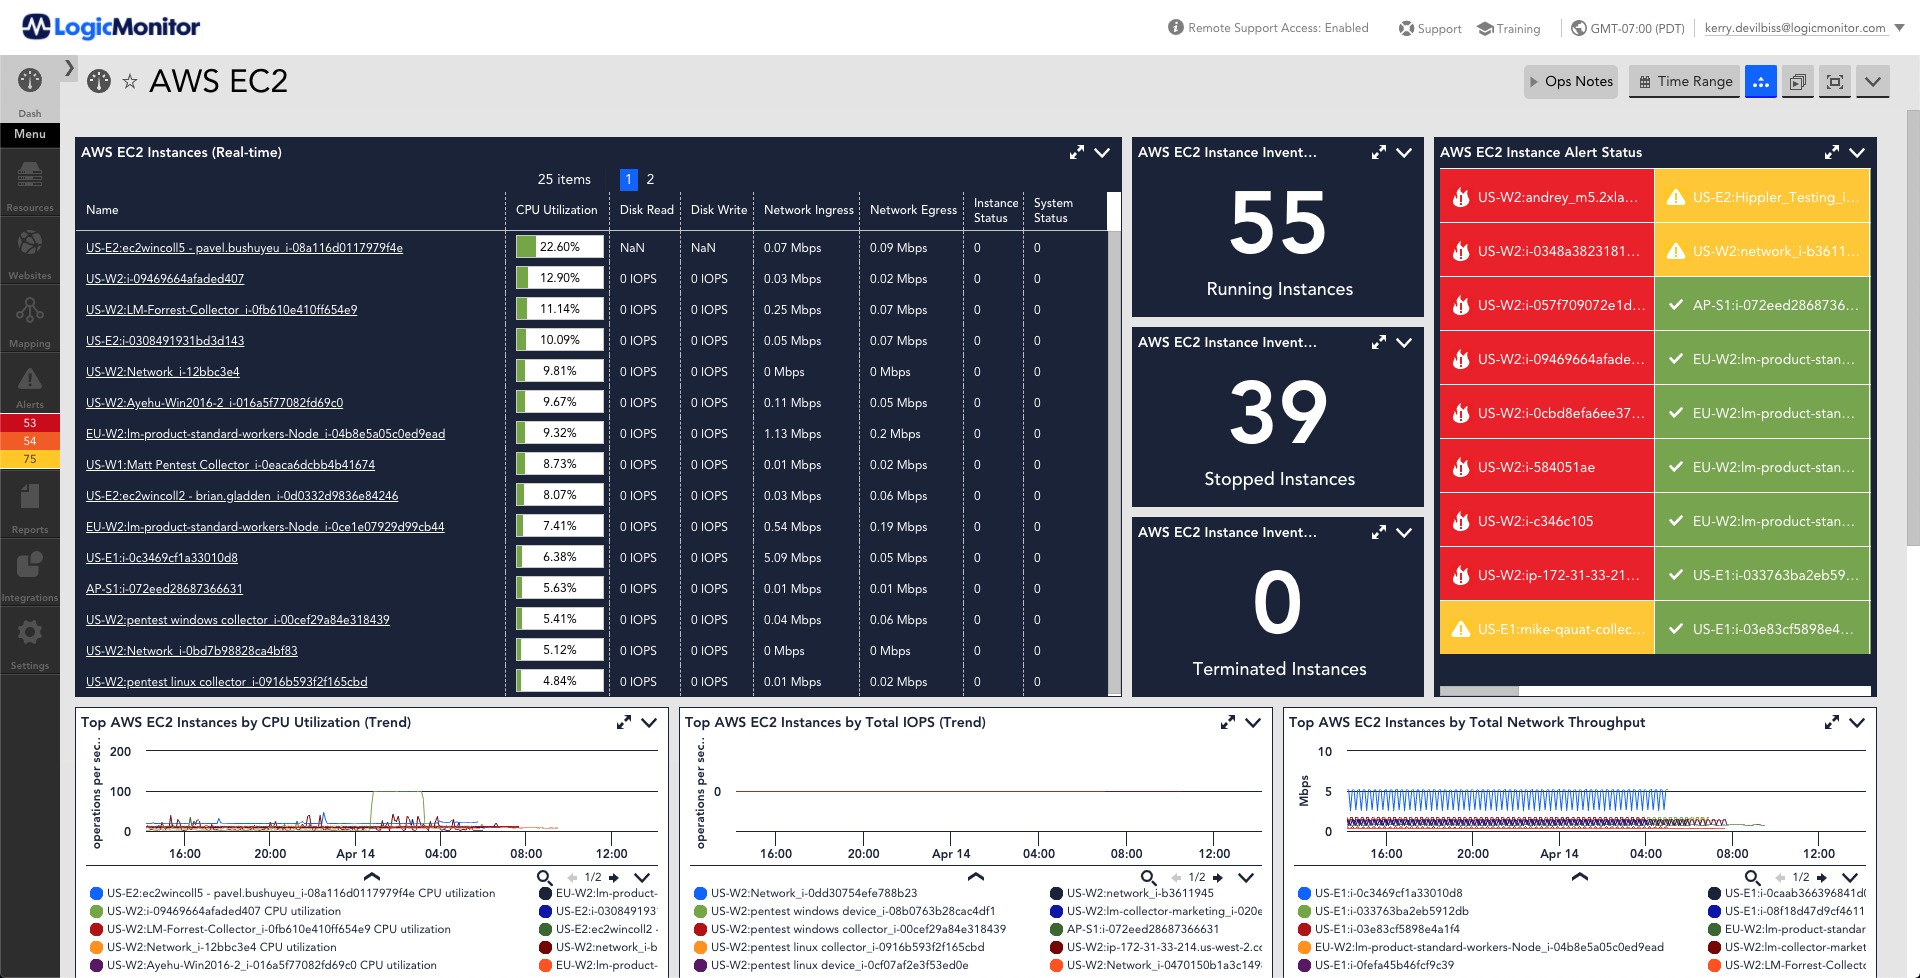 http://This%20dashboard%20provides%20an%20a%20listing%20of%20various%20metrics%20that%20are%20monitored%20for%20AWS%20EC2%20Service.%20The%20metrics%20displayed%20are%20instances,%20Instance%20counts%20for%20total,%20stopped%20and%20terminated,%20instance%20alert%20status,%20CPU%20utilization%20over%20time,%20total%20IOPS%20over%20time,%20total%20network%20throughput%20over%20time